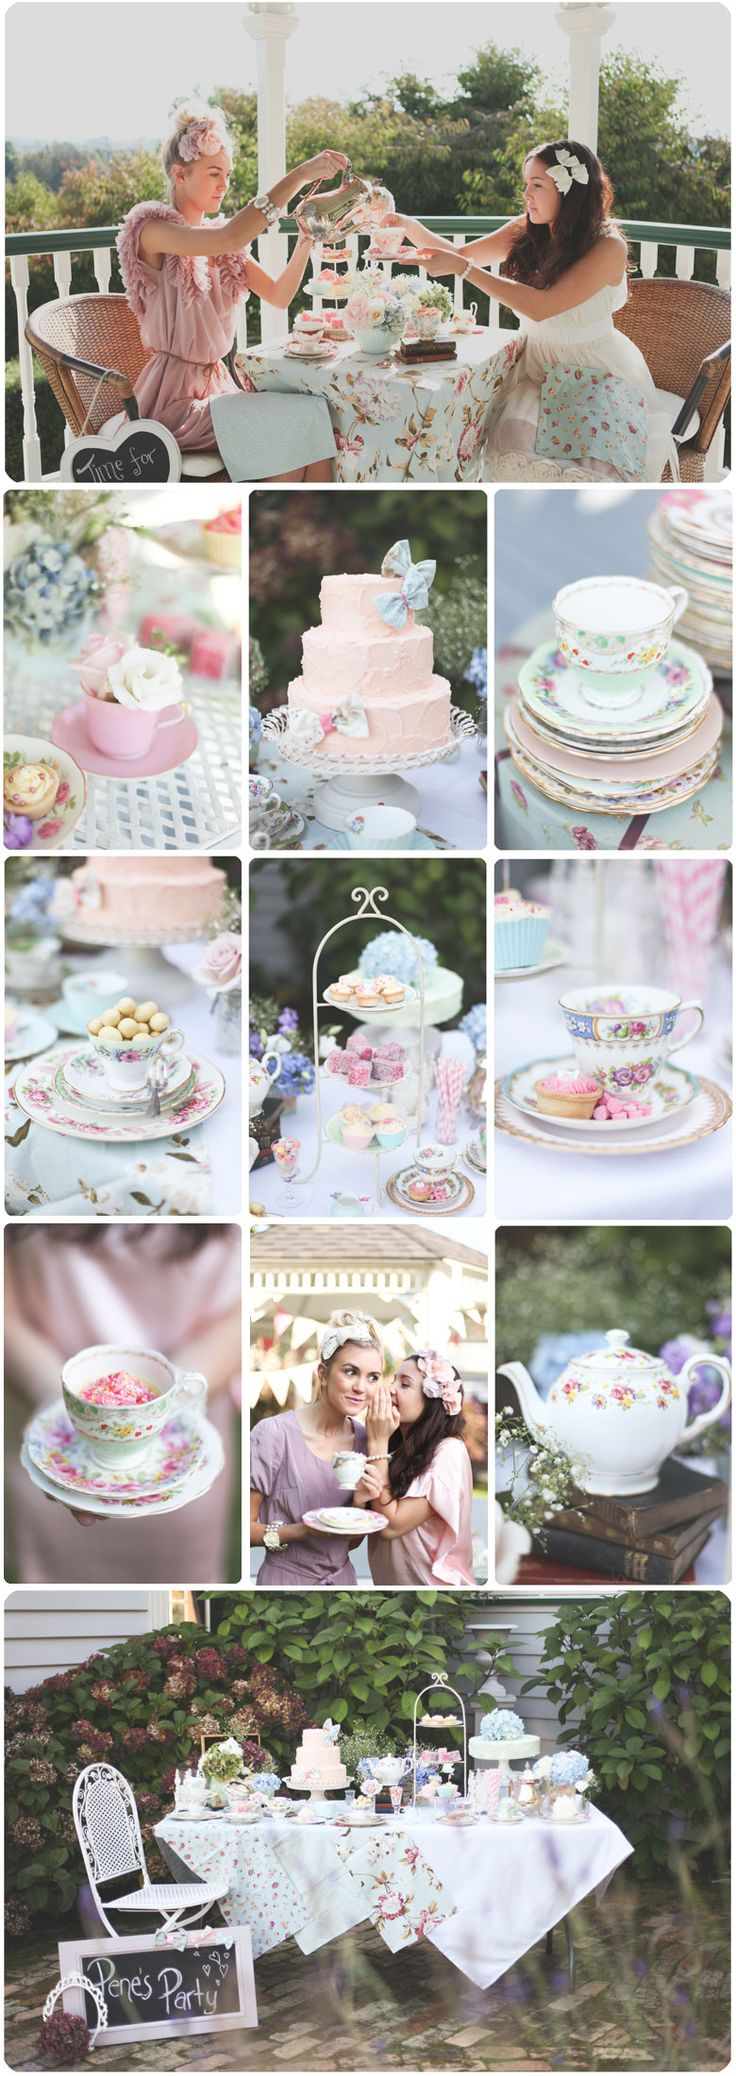 The Heirloom Afternoon Tea Party